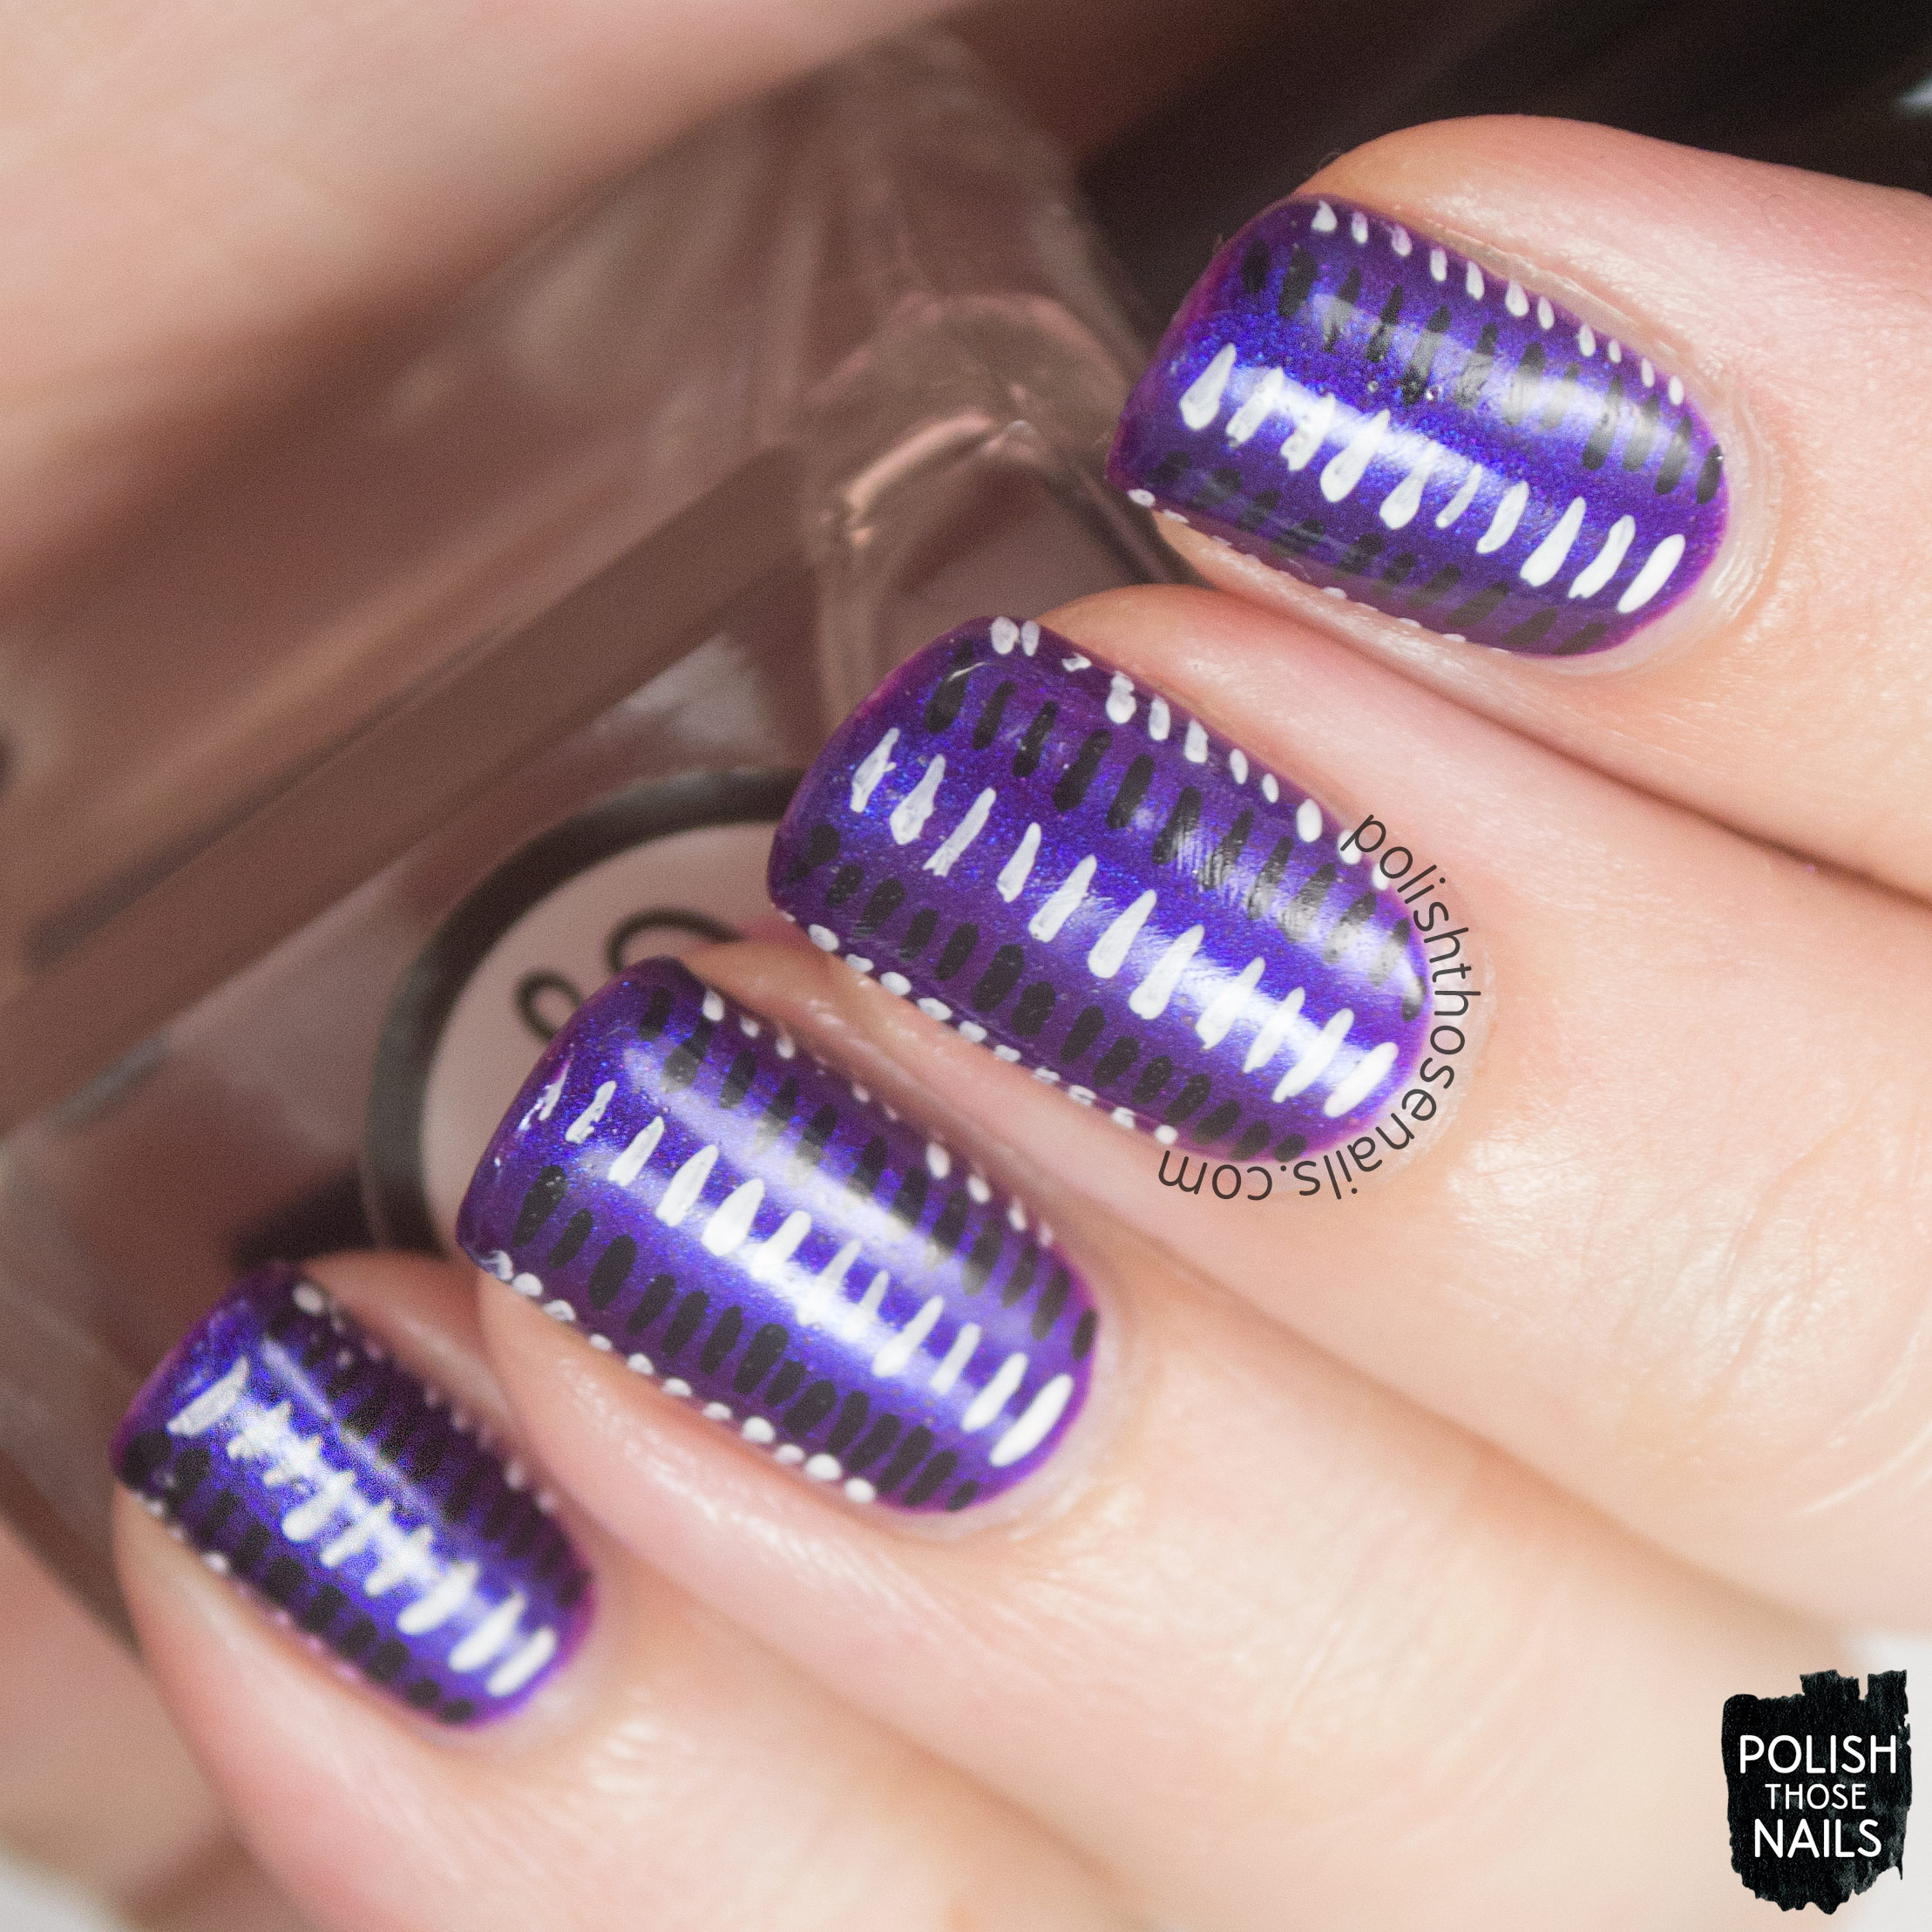 Concrete And Nail Polish Striped Nail Art: Stripes • Polish Those Nails